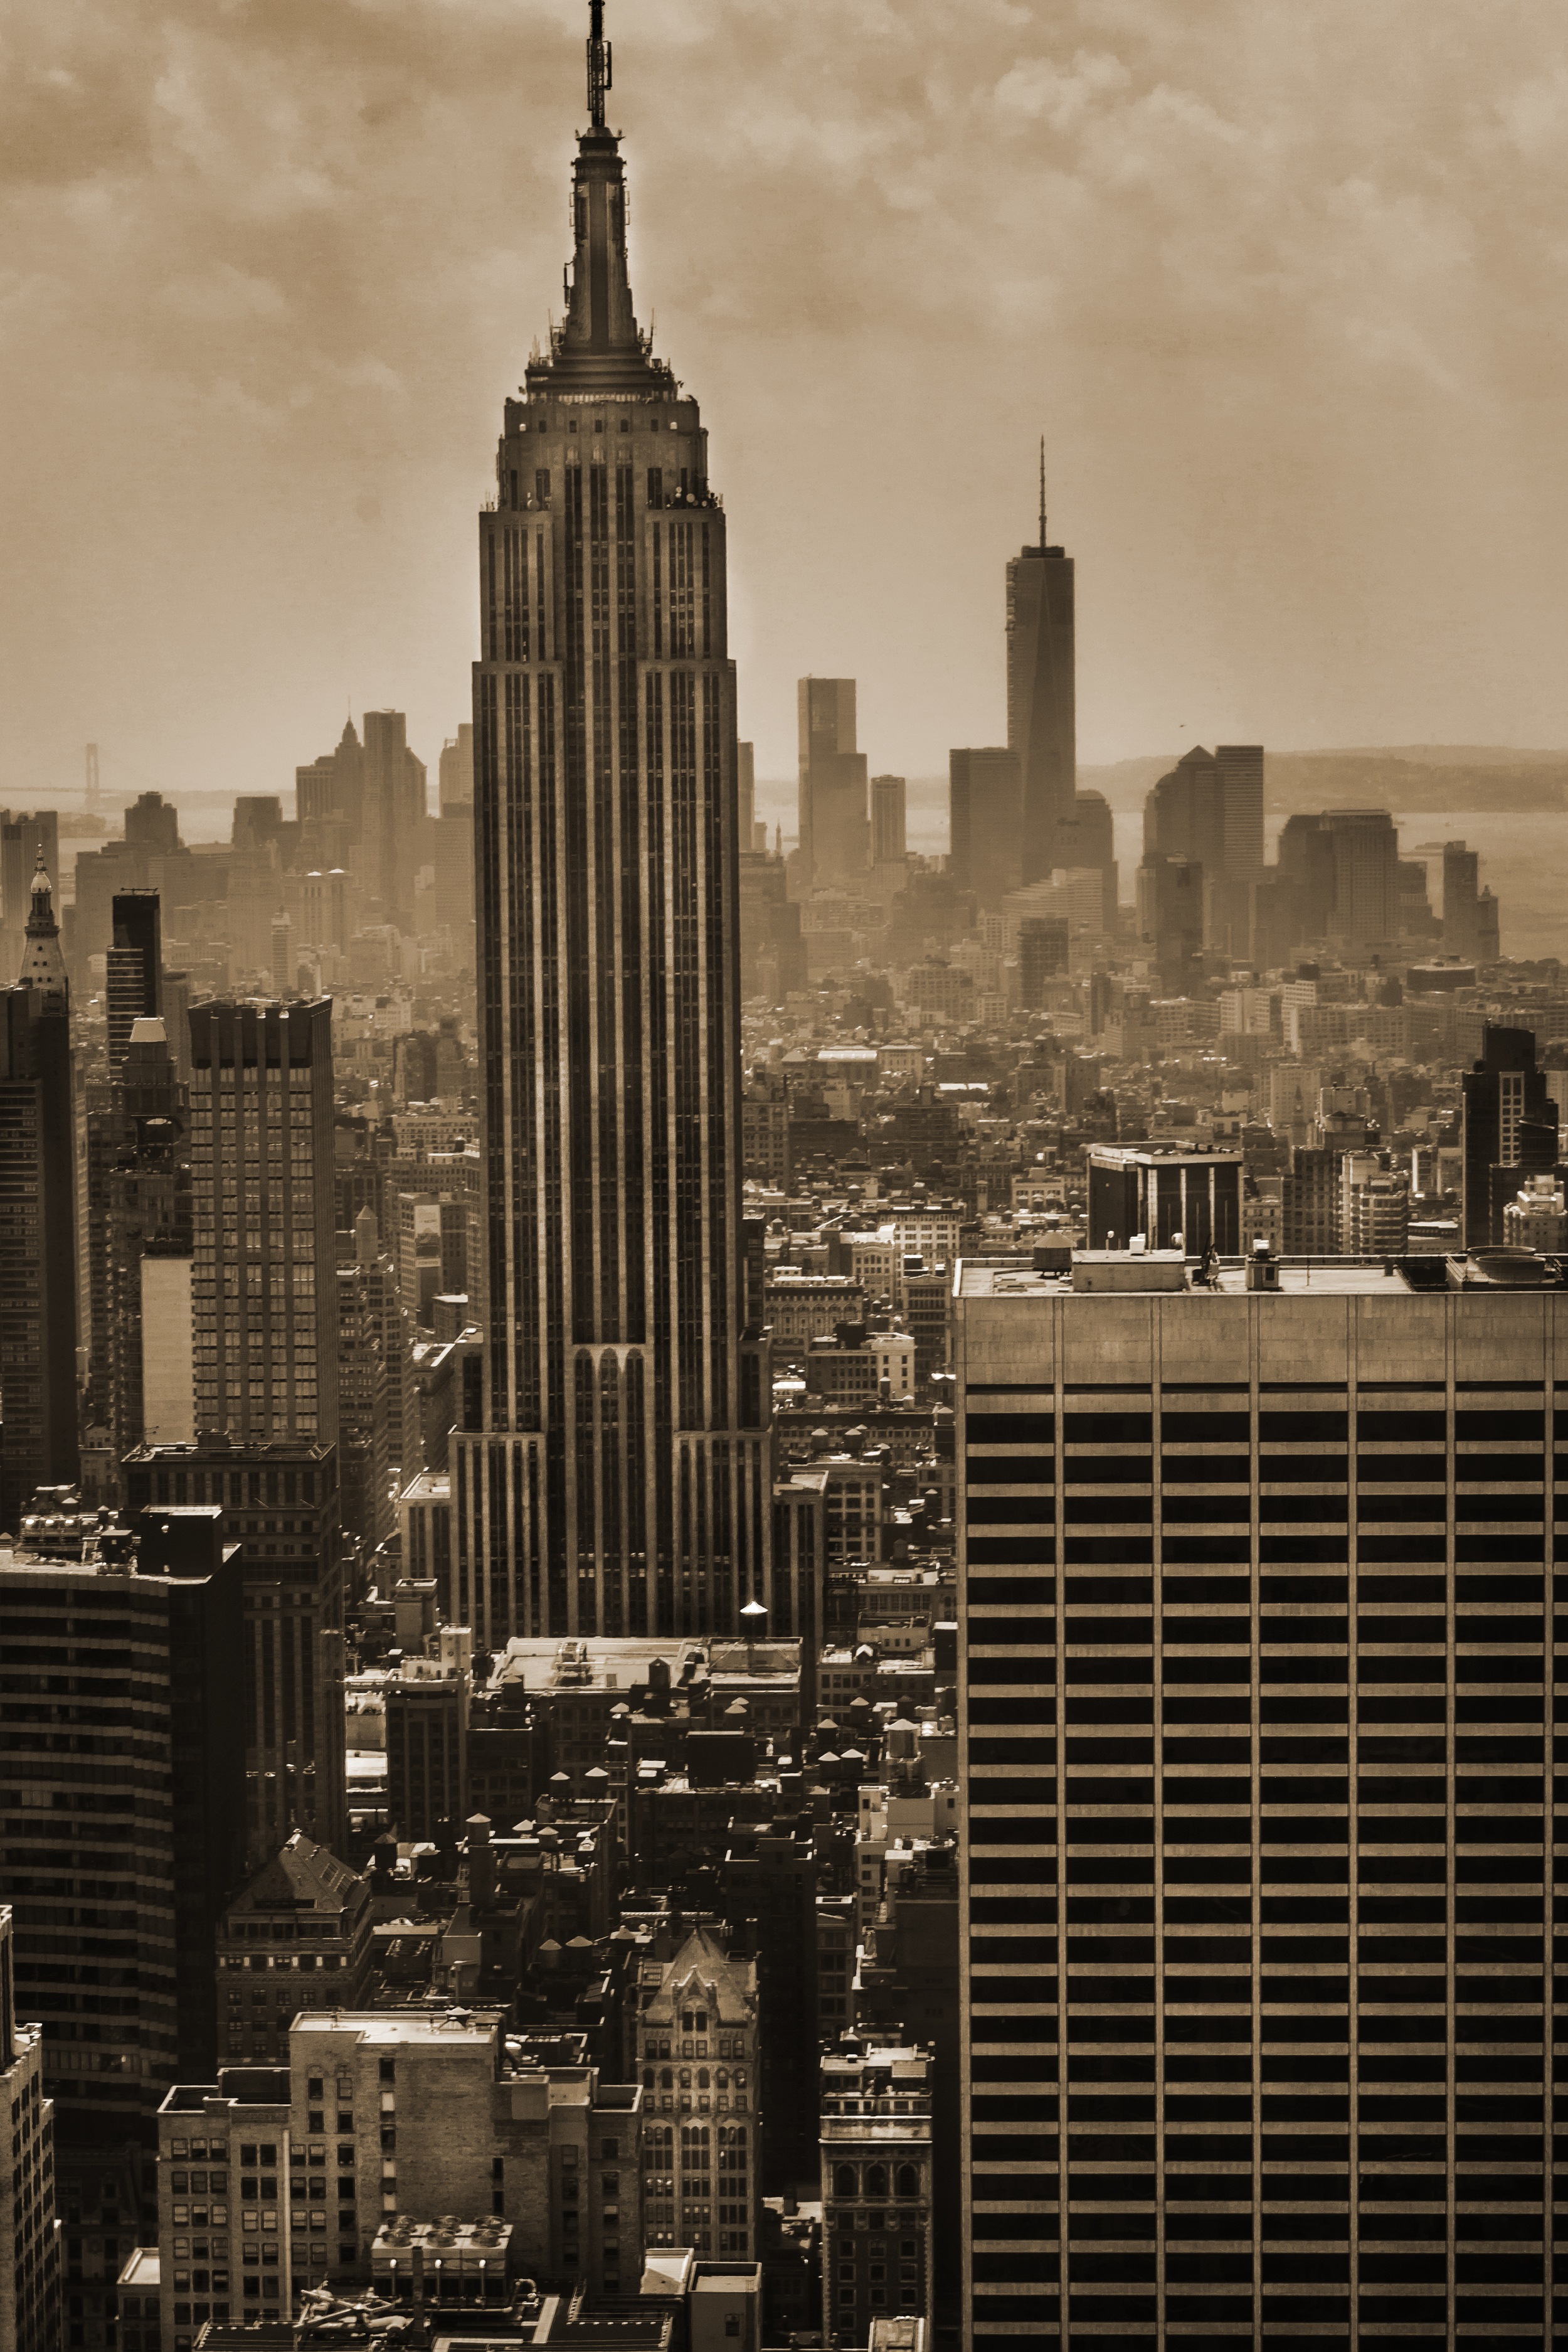 Empire State Building from the Top of Rockefeller Center